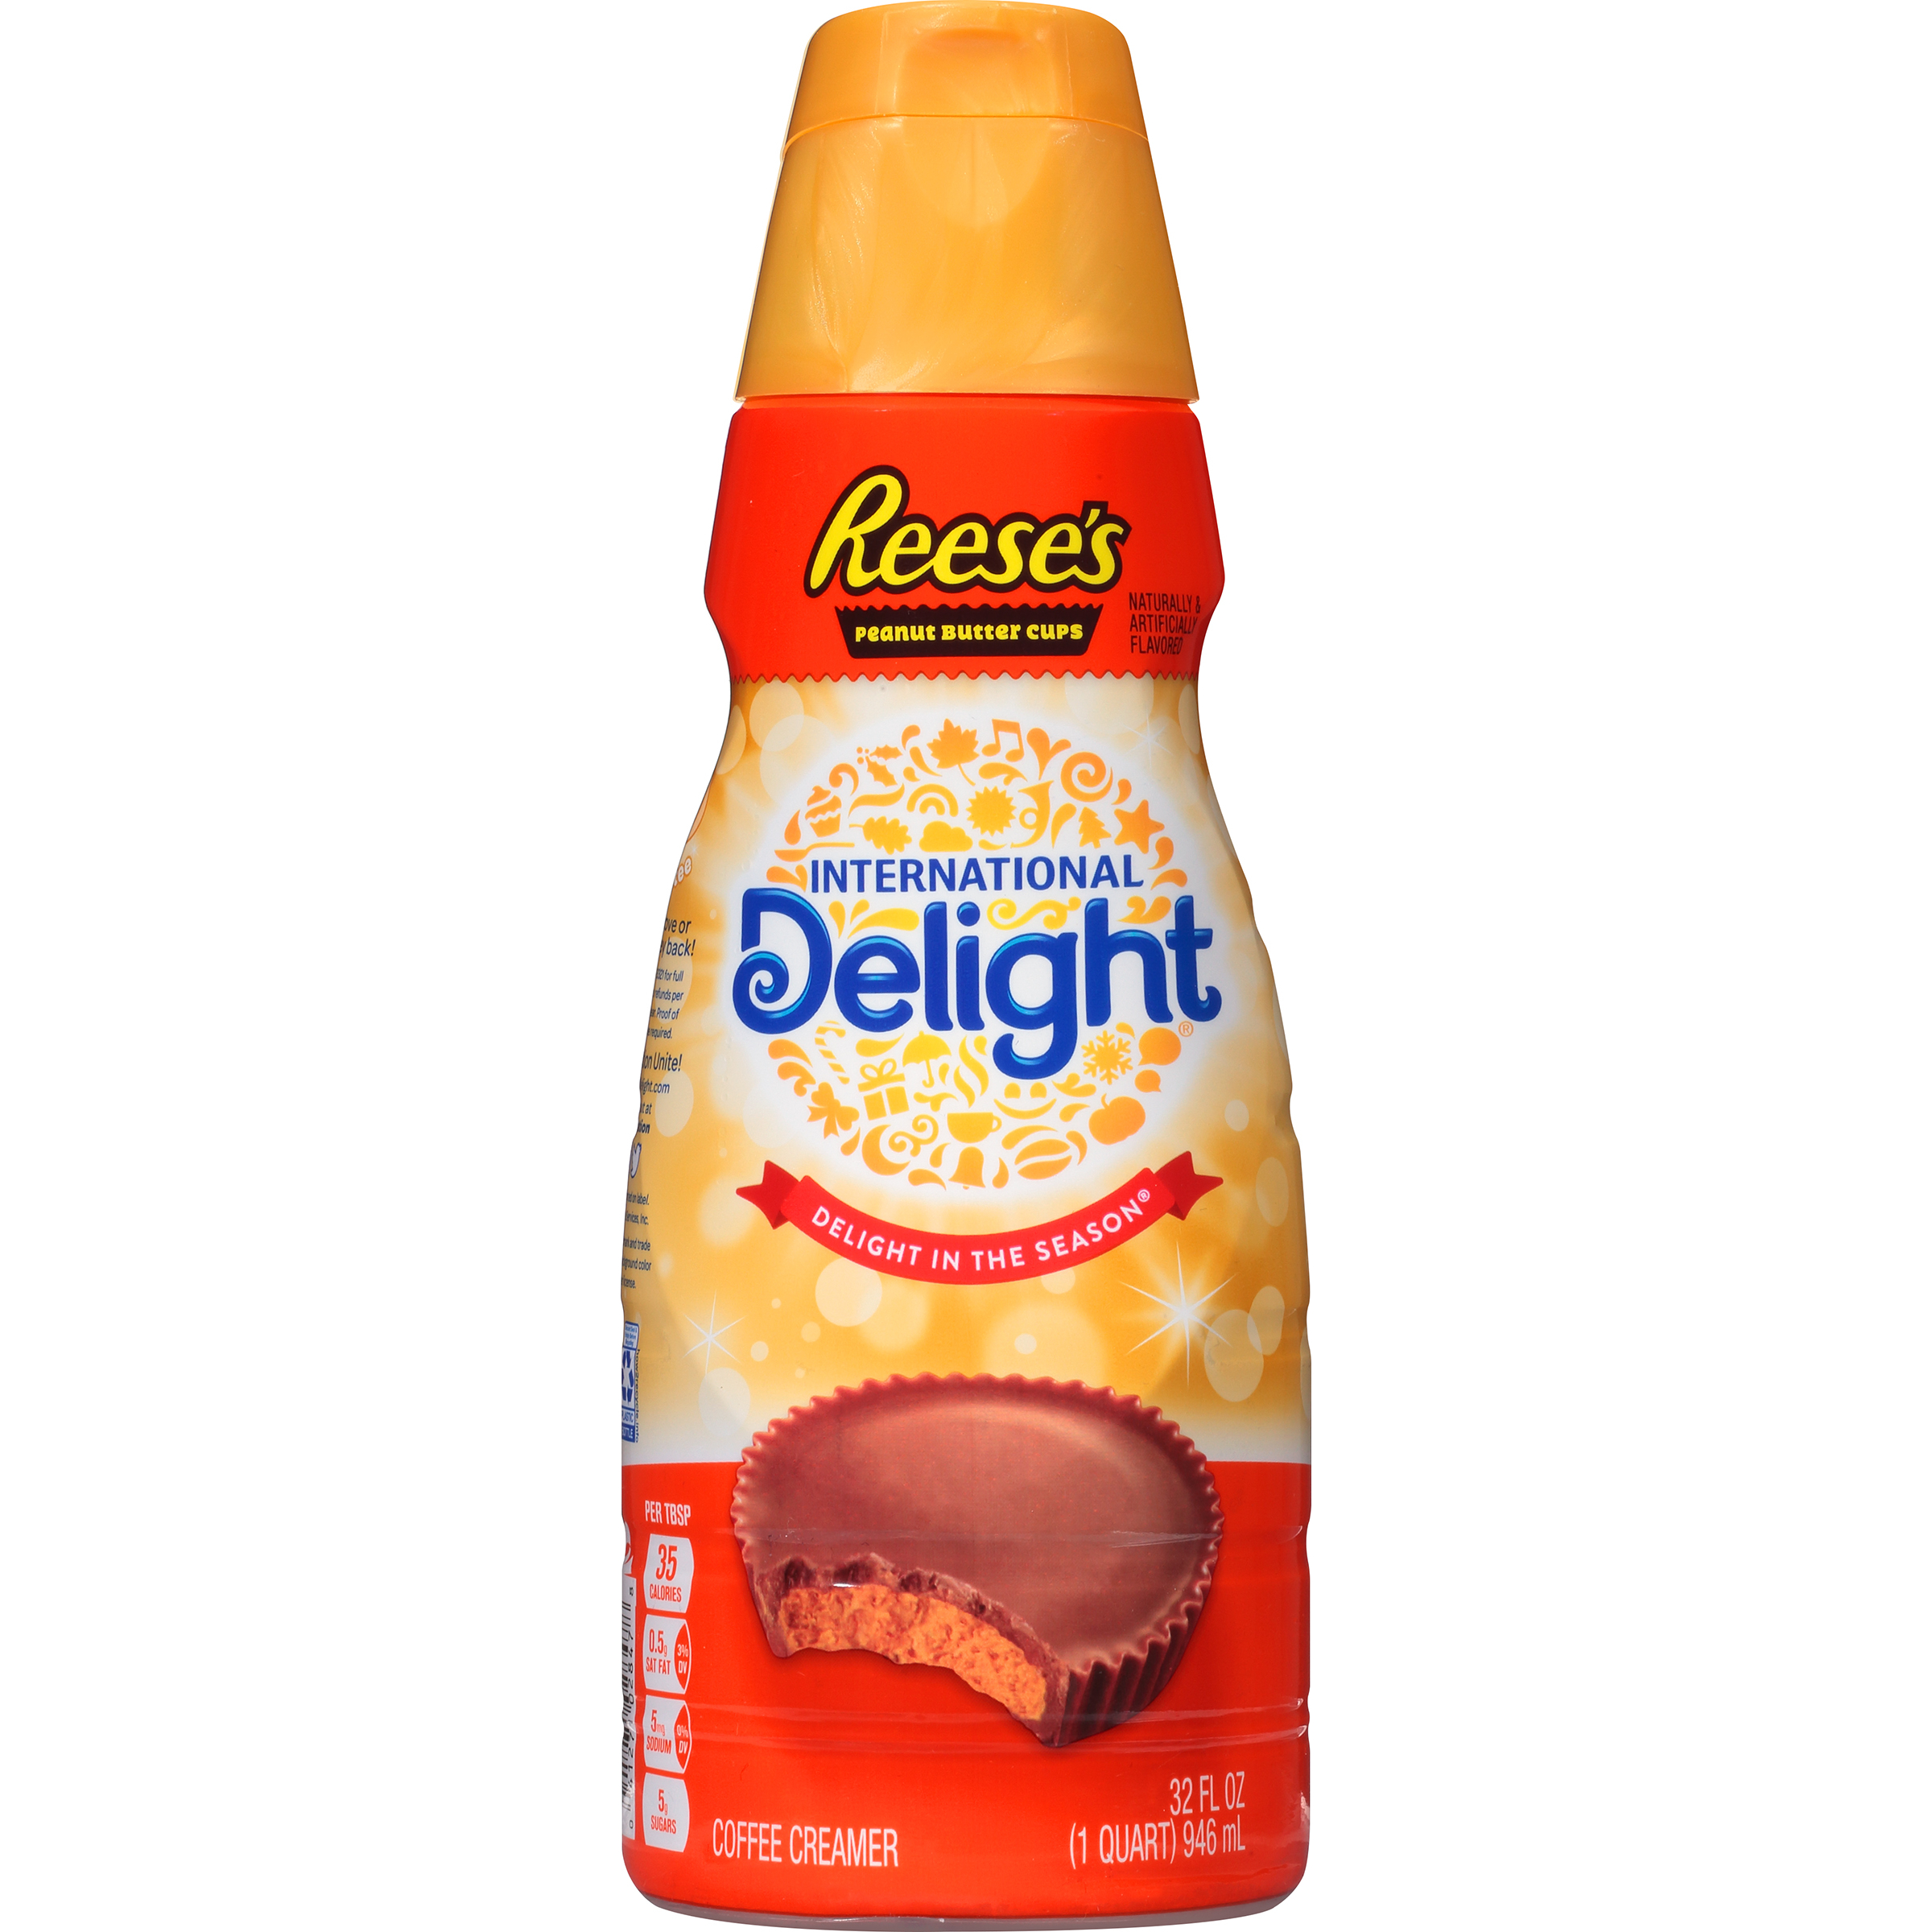 International Delight Reese's Peanut Butter Cup Coffee Creamer, 32 oz